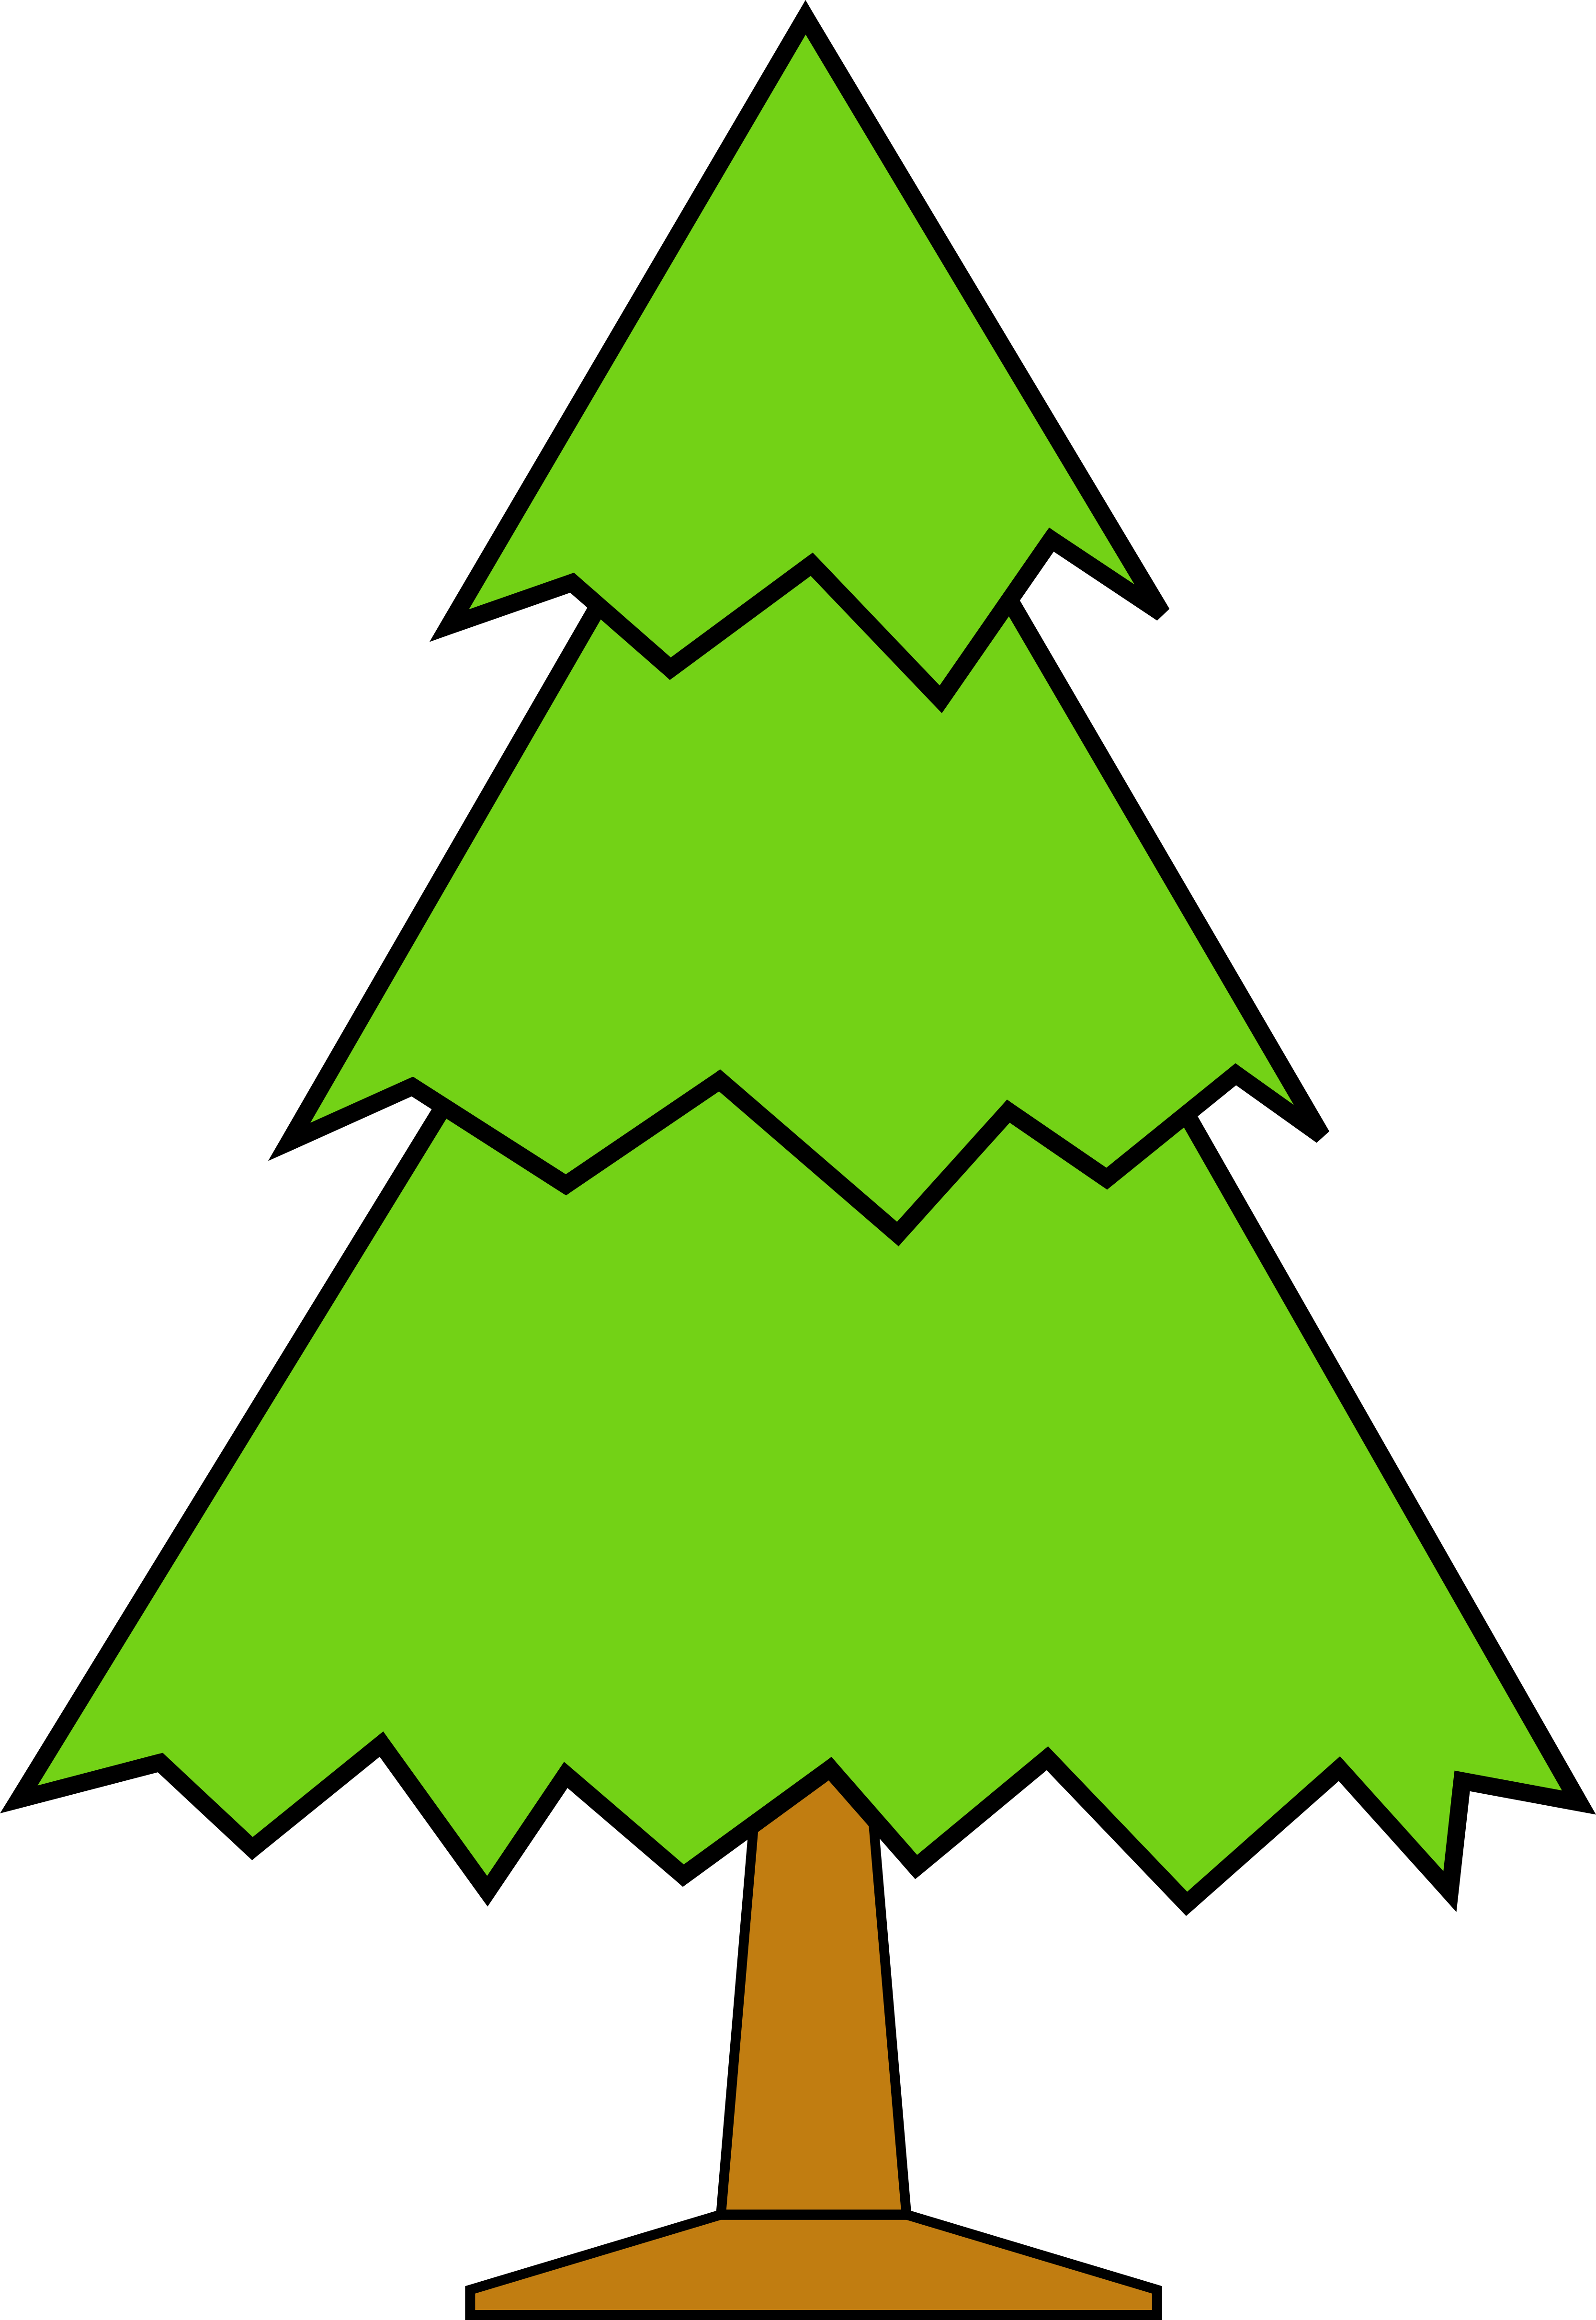 Download Christmas Tree Cartoon Clip Art Merry Christmas And Forest Tree Clipart Full Size Png Image Pngkit